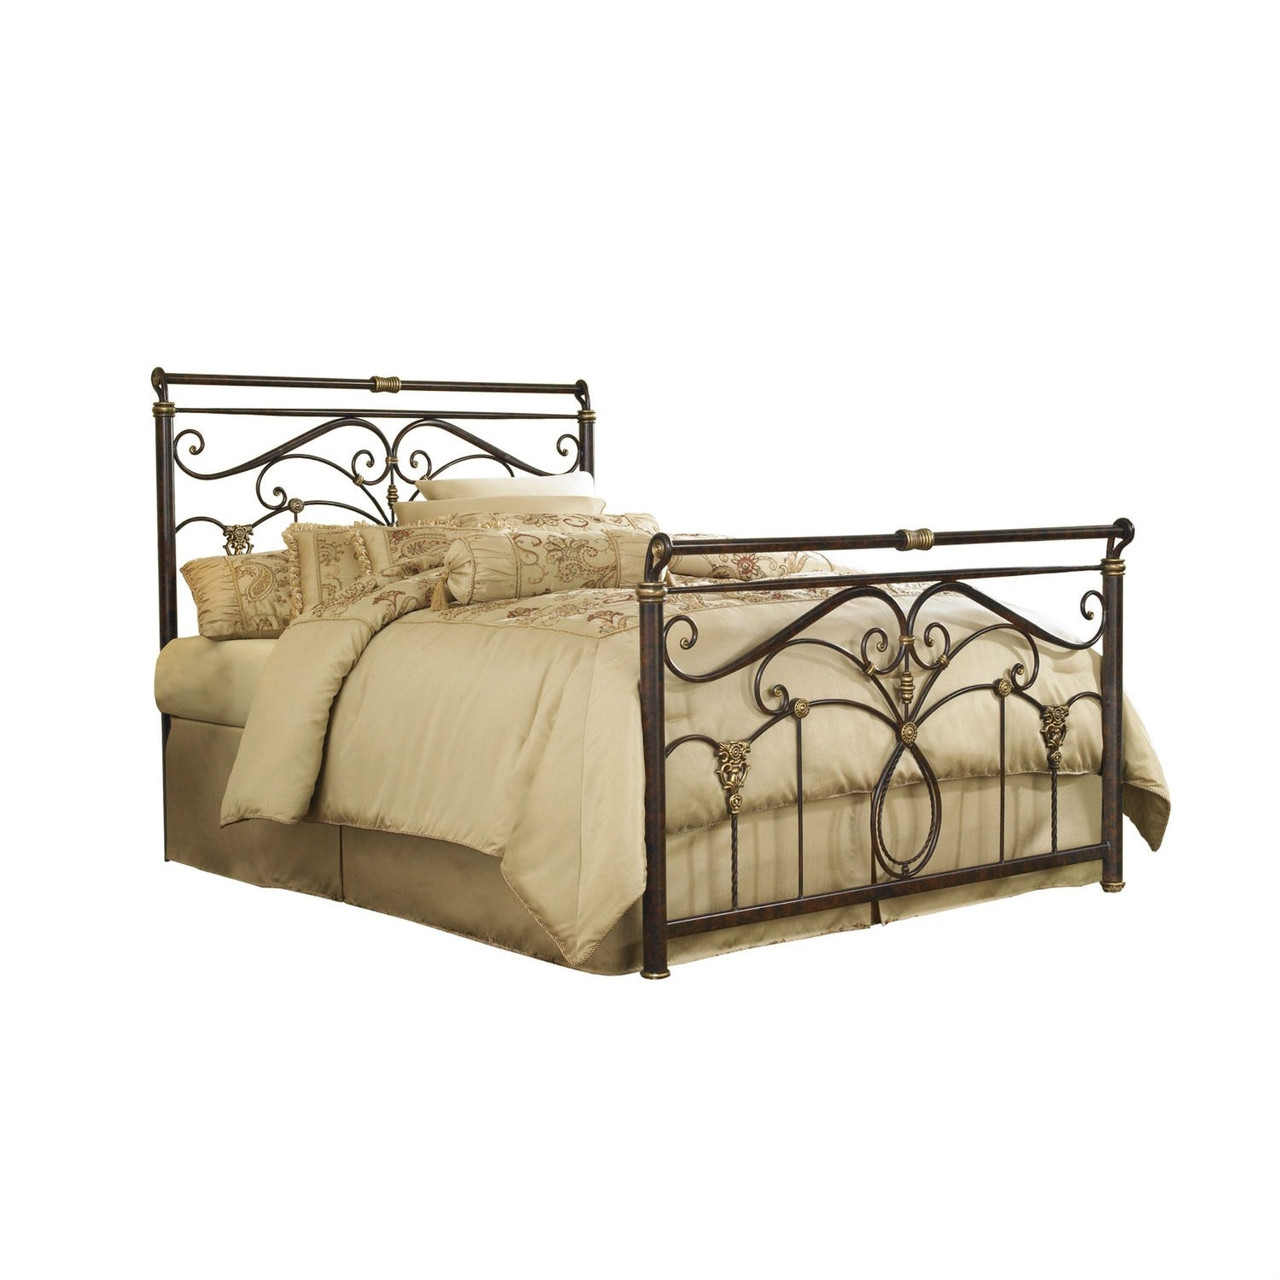 - Queen Size Metal Sleigh Bed In Marbled Russet Finish